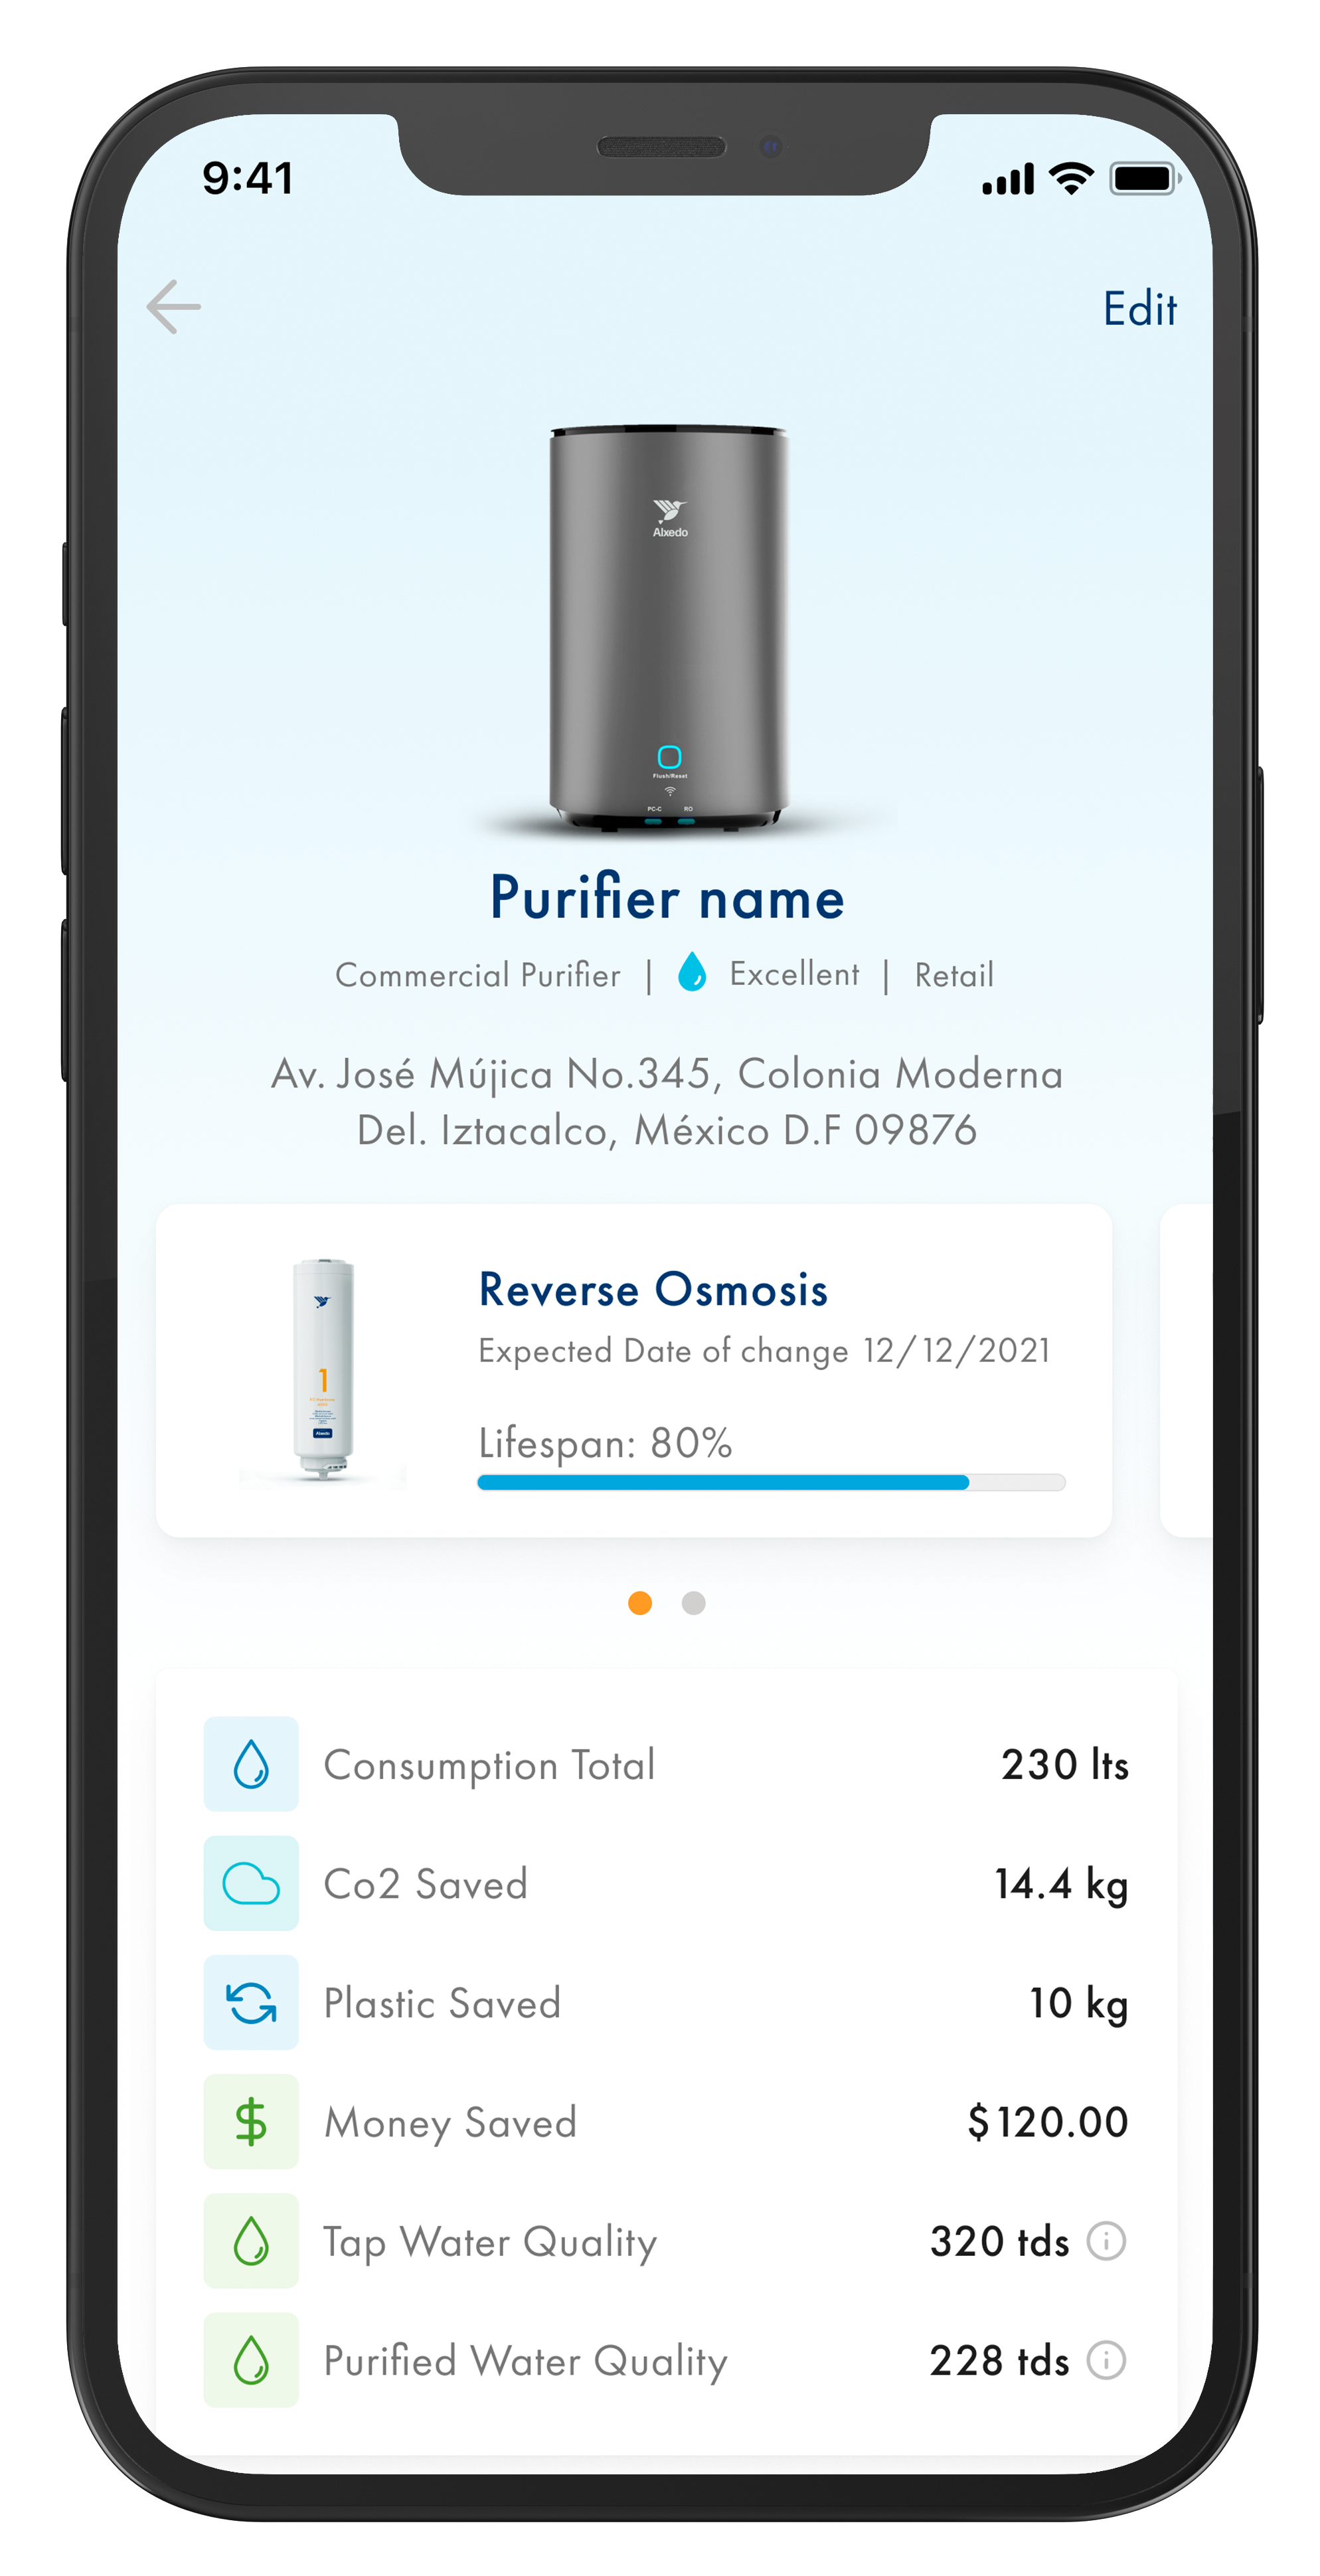 Phone with Alxedo App opened showing purificationv water statistics.